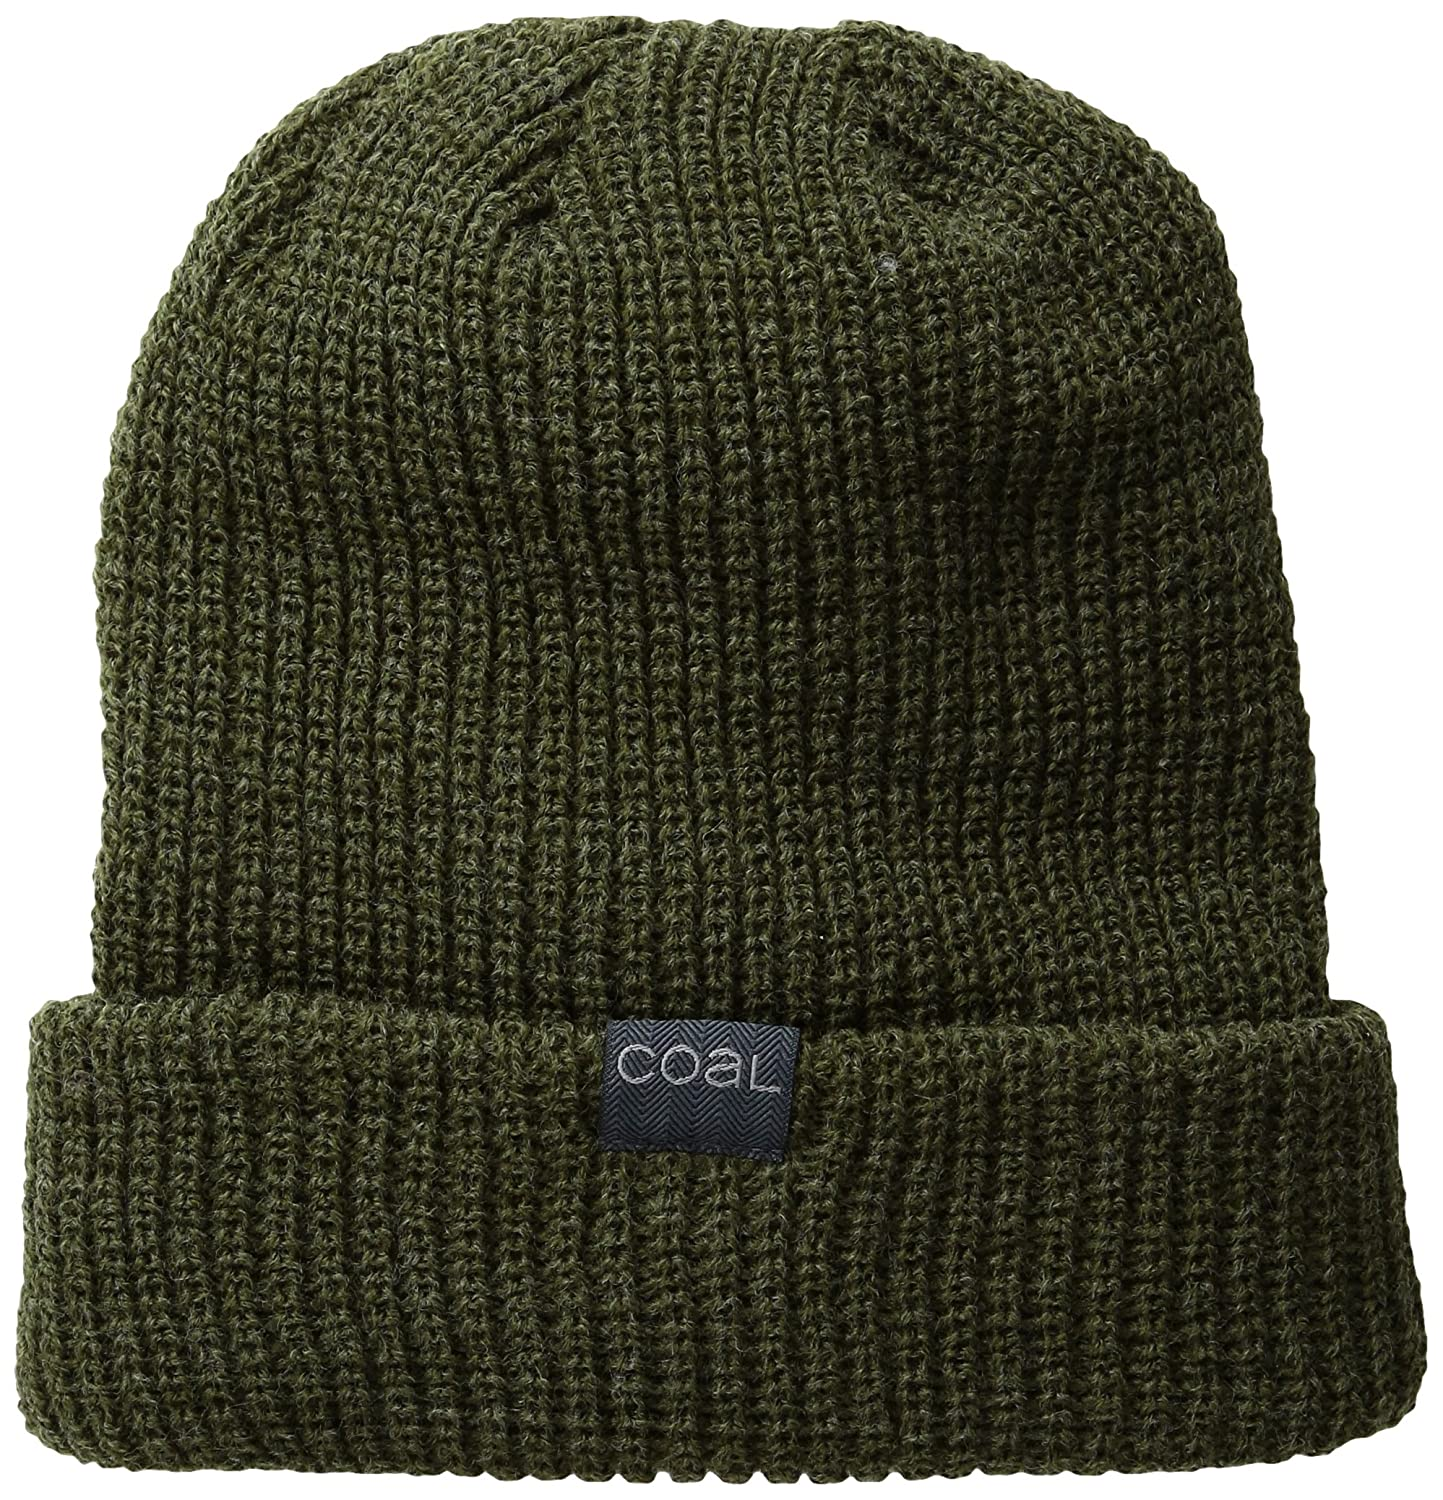 Coal Men's Stanley Beanie Coal Men' s Stanley Beanie Black One Size Coal Young Men' s